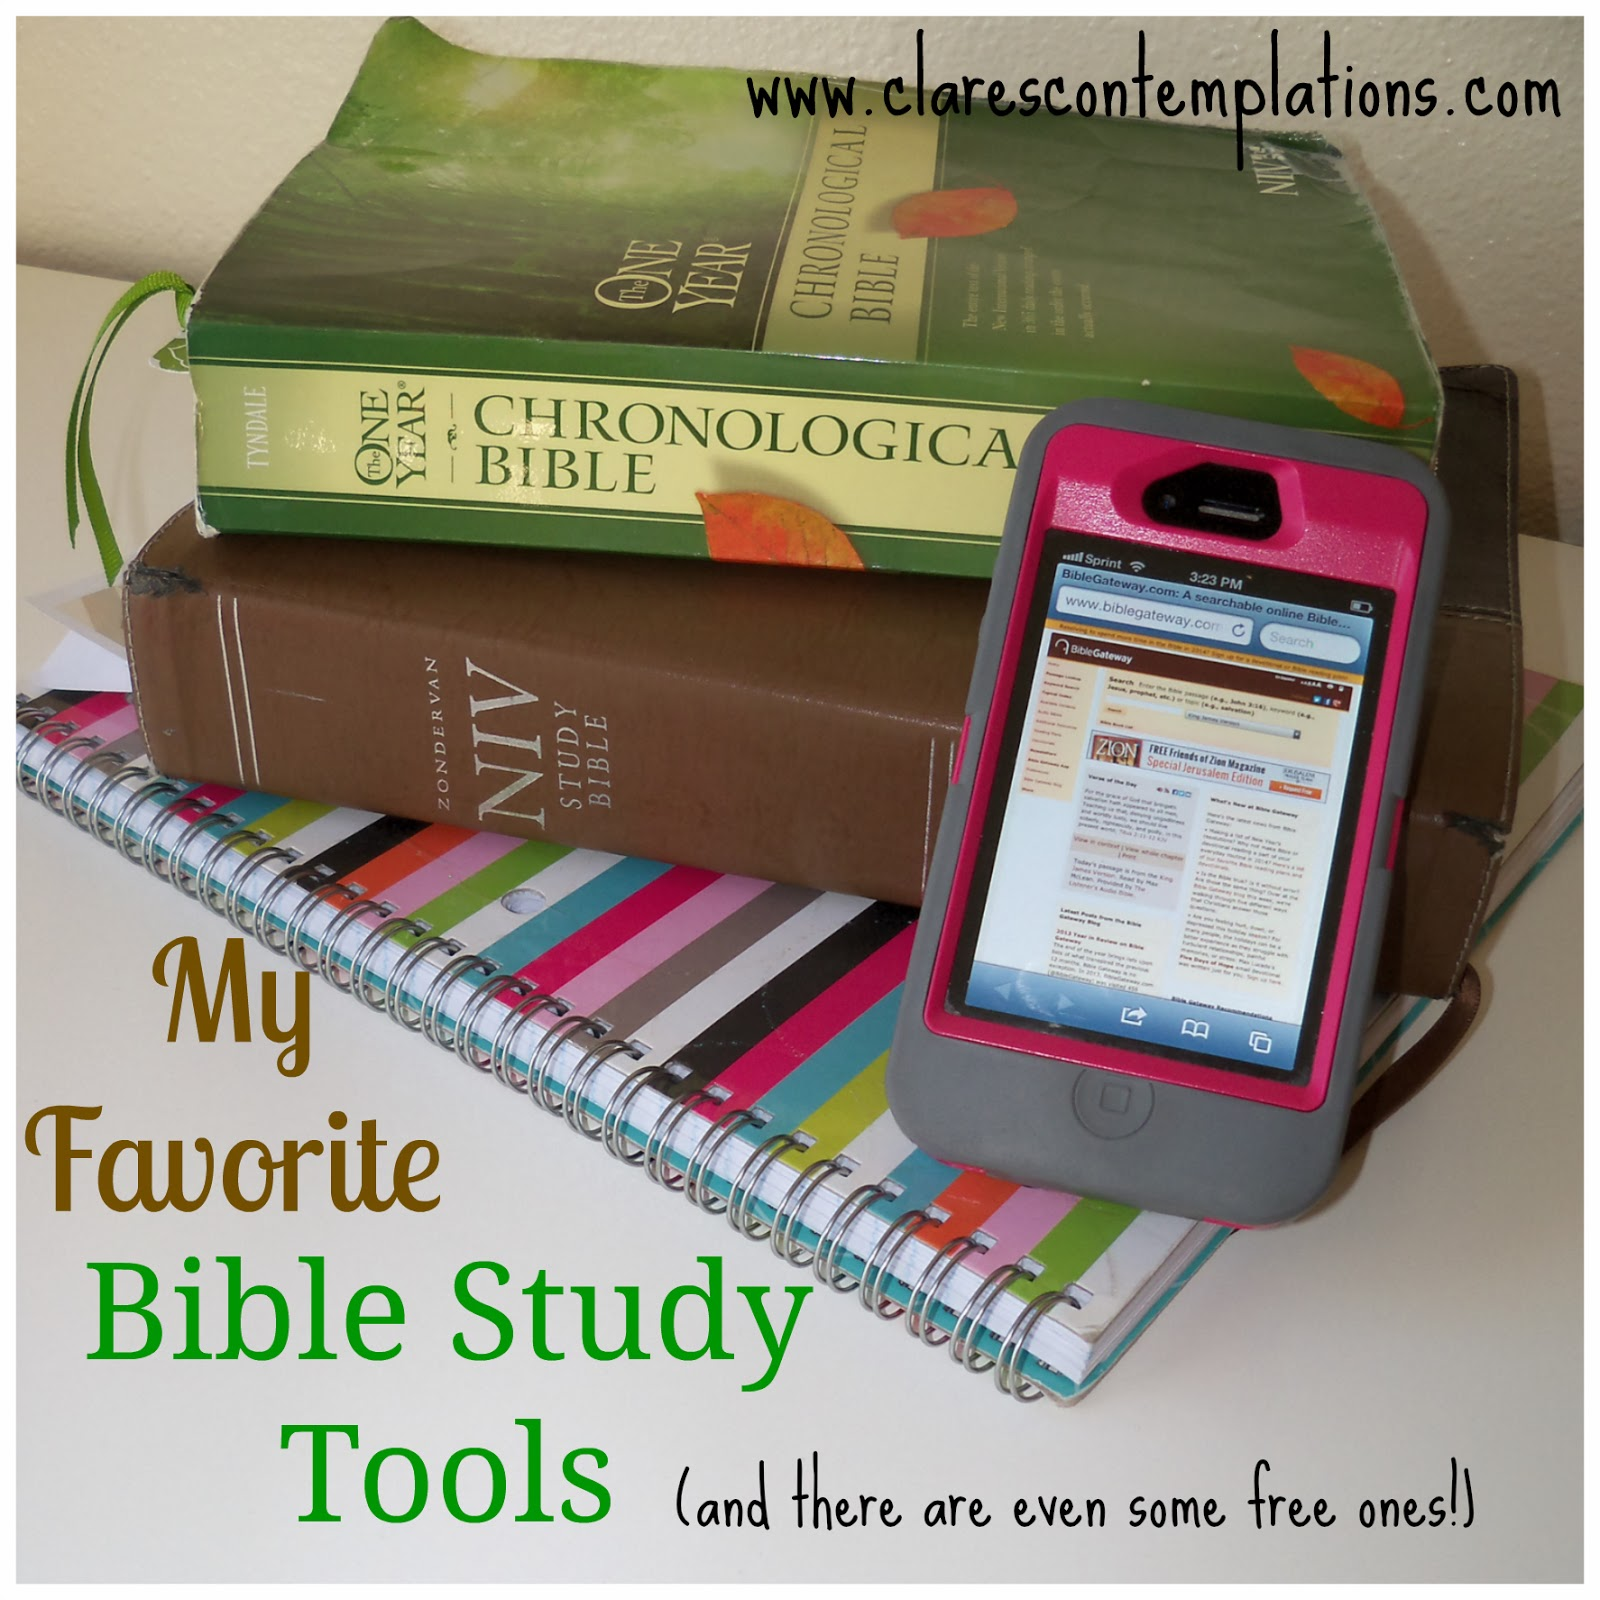 http://www.clarescontemplations.com/2014/01/my-favorite-bible-study-tools.html